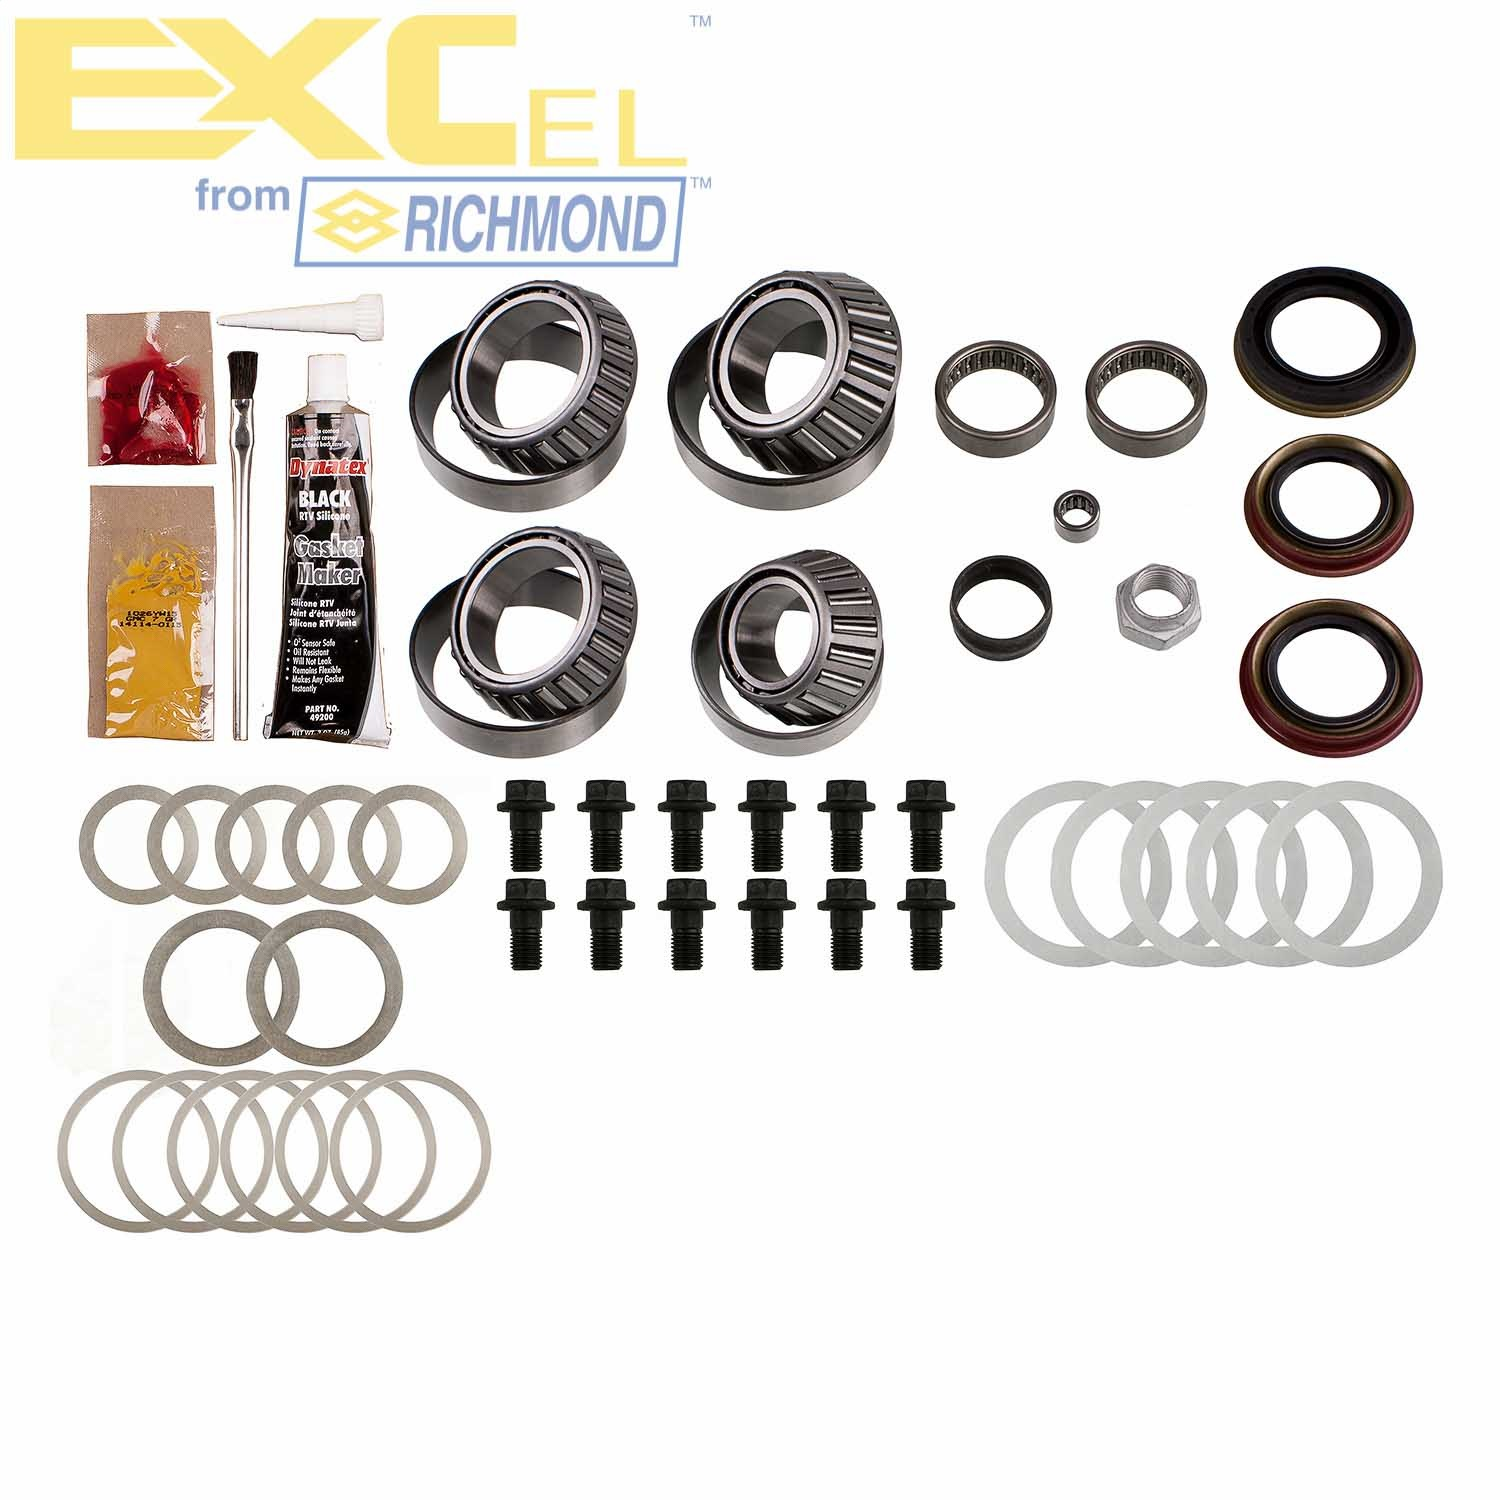 EXCEL from Richmond XL-2005-1 Differential Bearing Kit